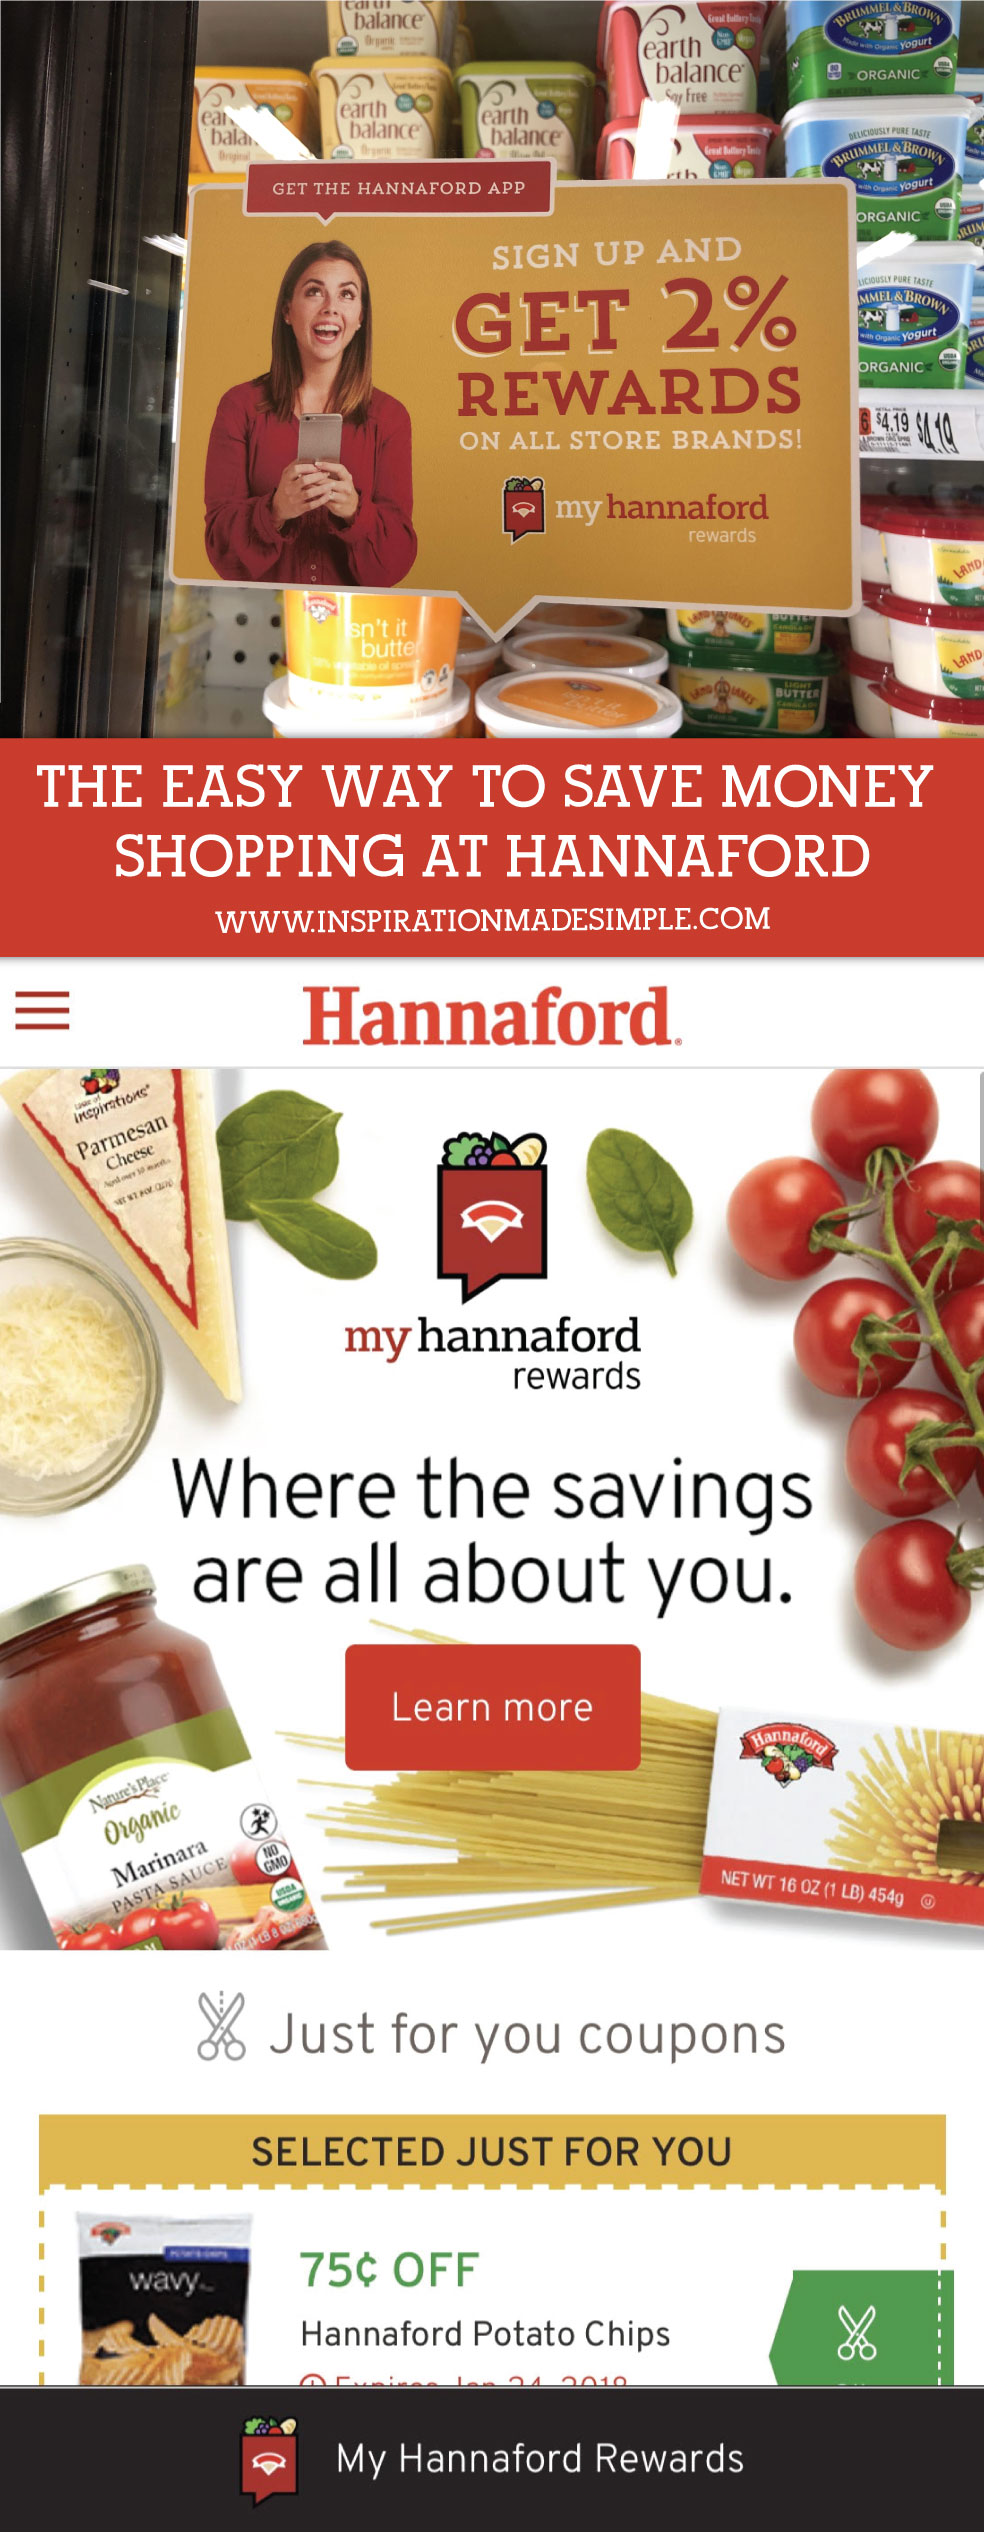 My Hannaford Rewards Program